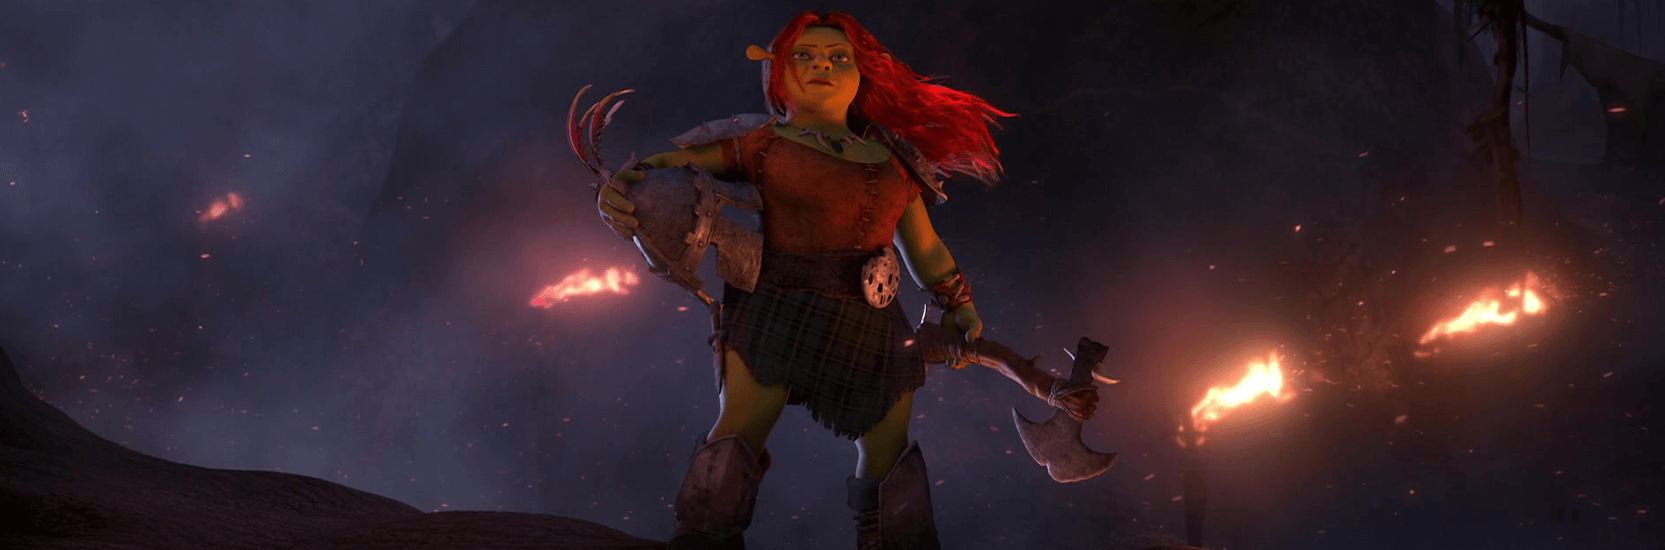 Critique – Shrek 4 : Le chant de l'ogre ?